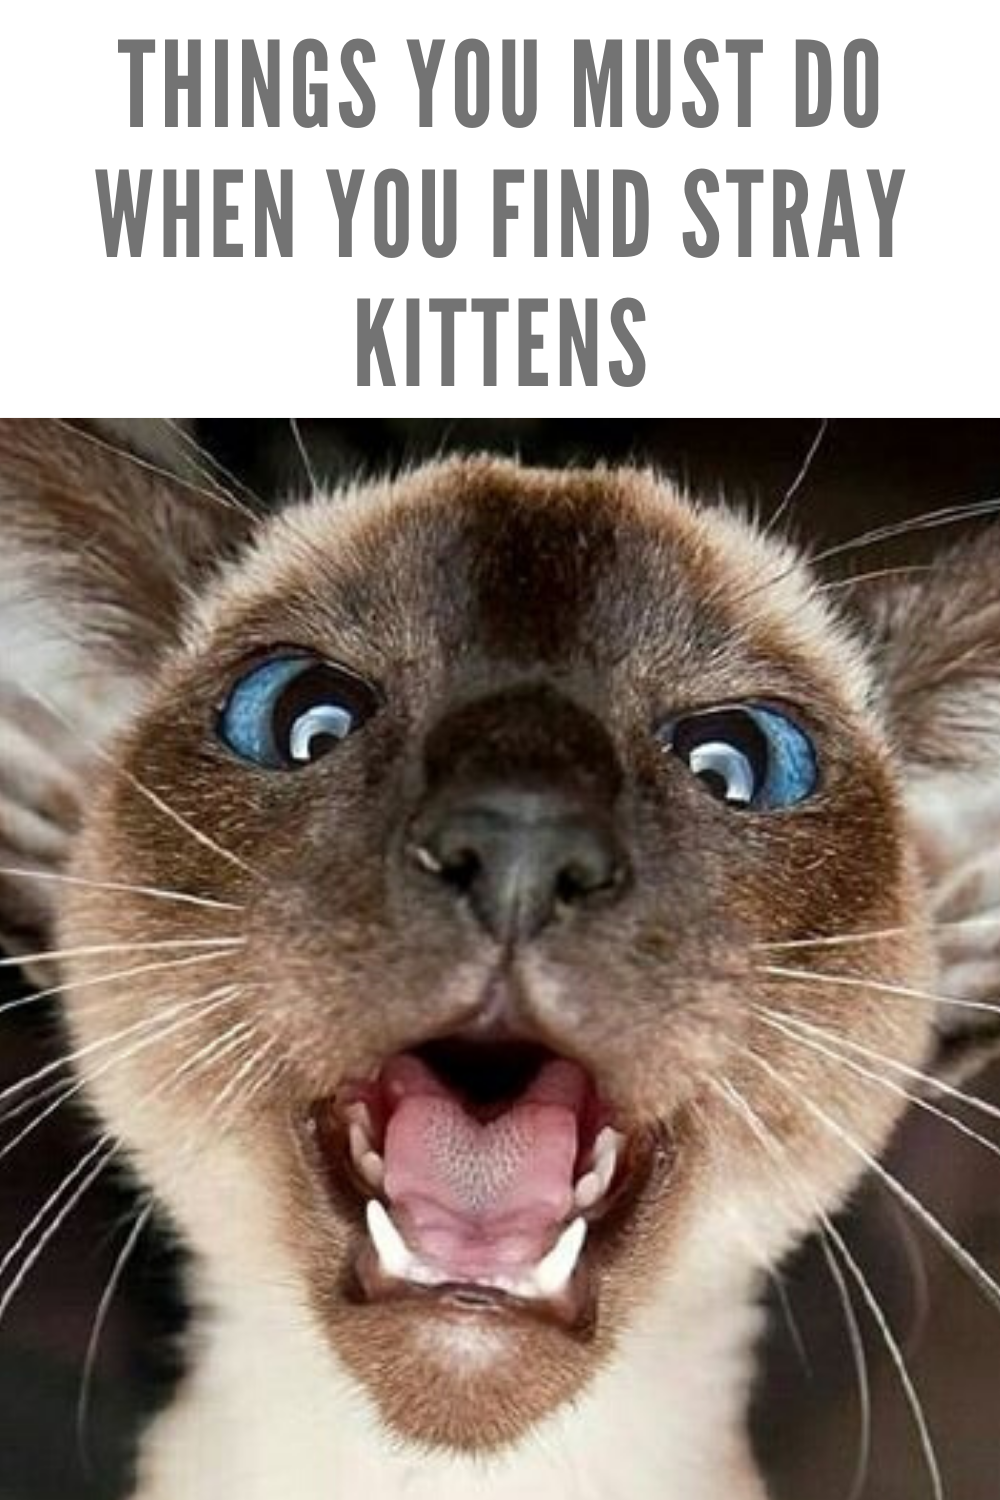 Things You Must Do When You Find Stray Kittens In 2020 Funny Cats Kittens Cats